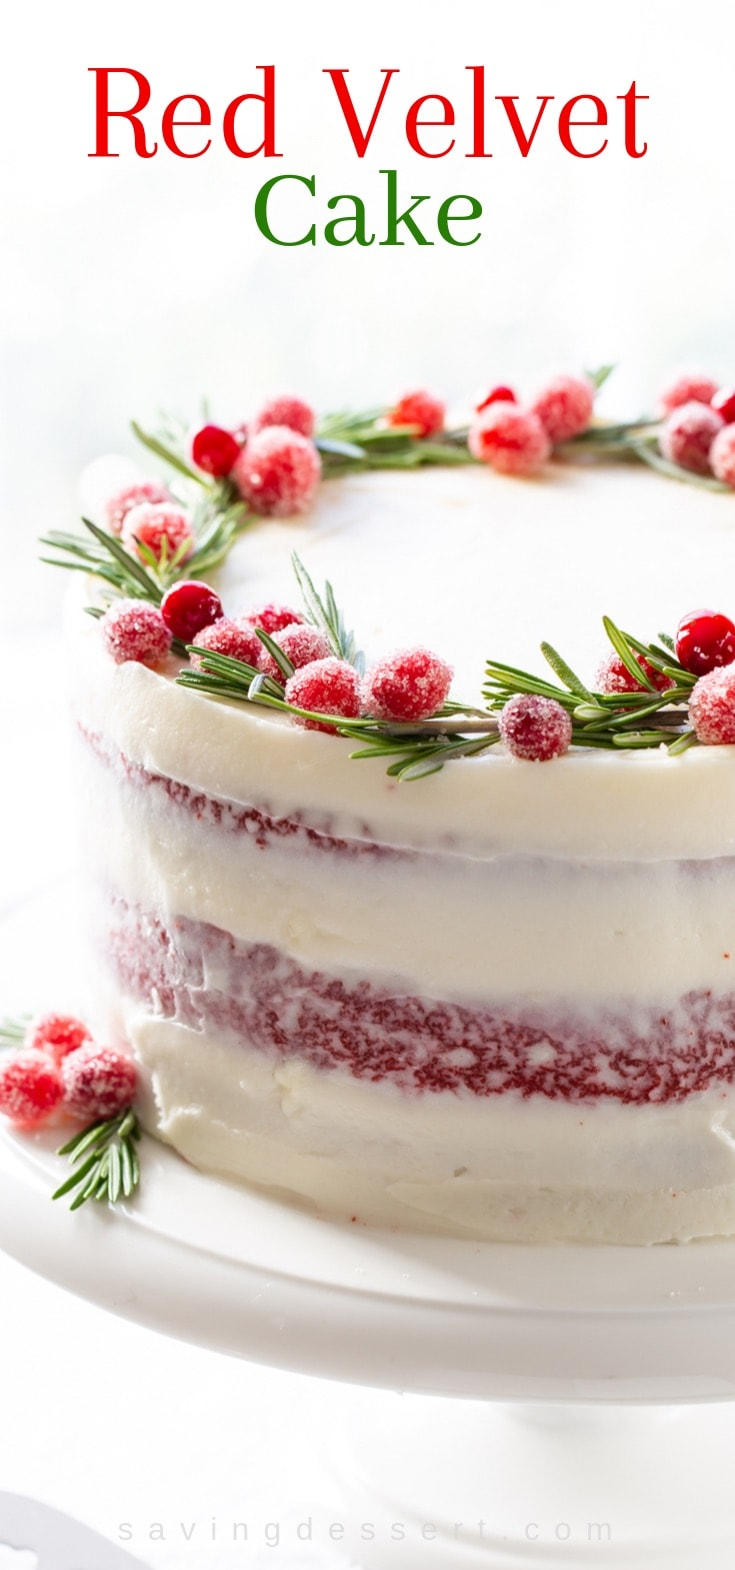 A three layer red velvet cake topped with sugared cranberries and fresh rosemary